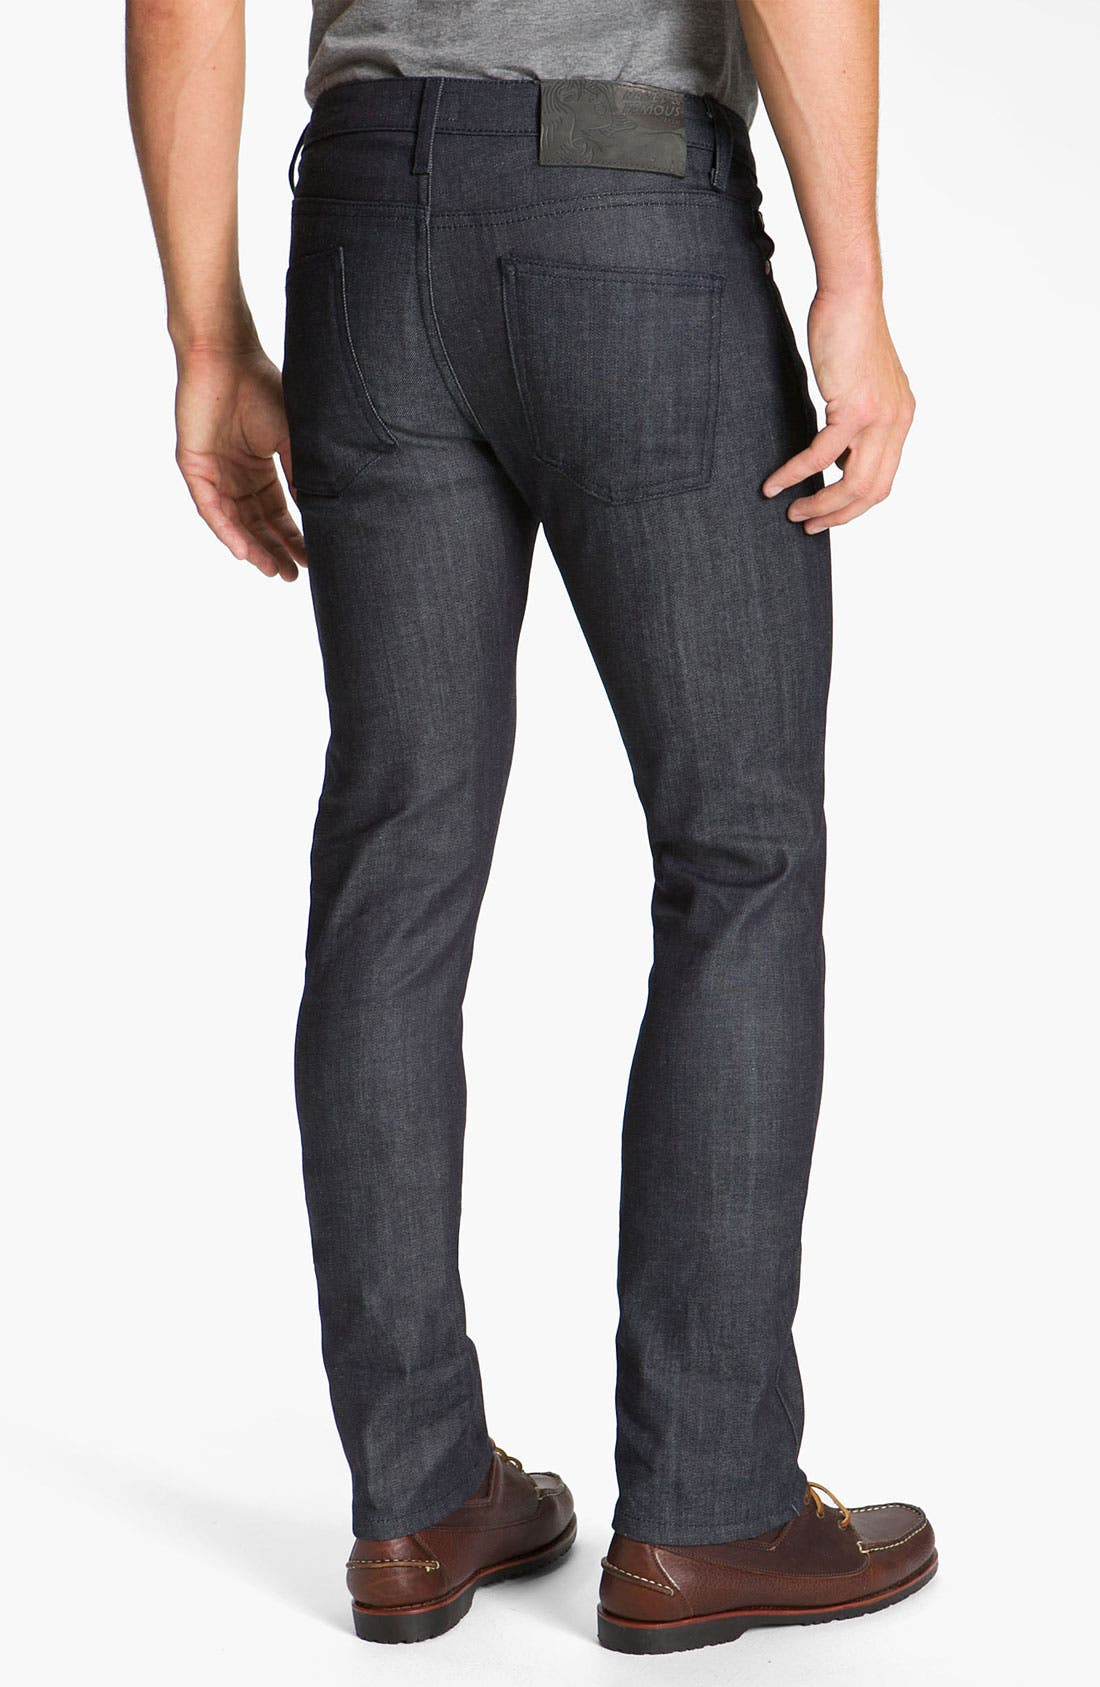 Alternate Image 1 Selected - Naked & Famous Denim 'Skinny Guy' Slim Cotton Cashmere Skinny Leg Jeans (Dark Indigo)